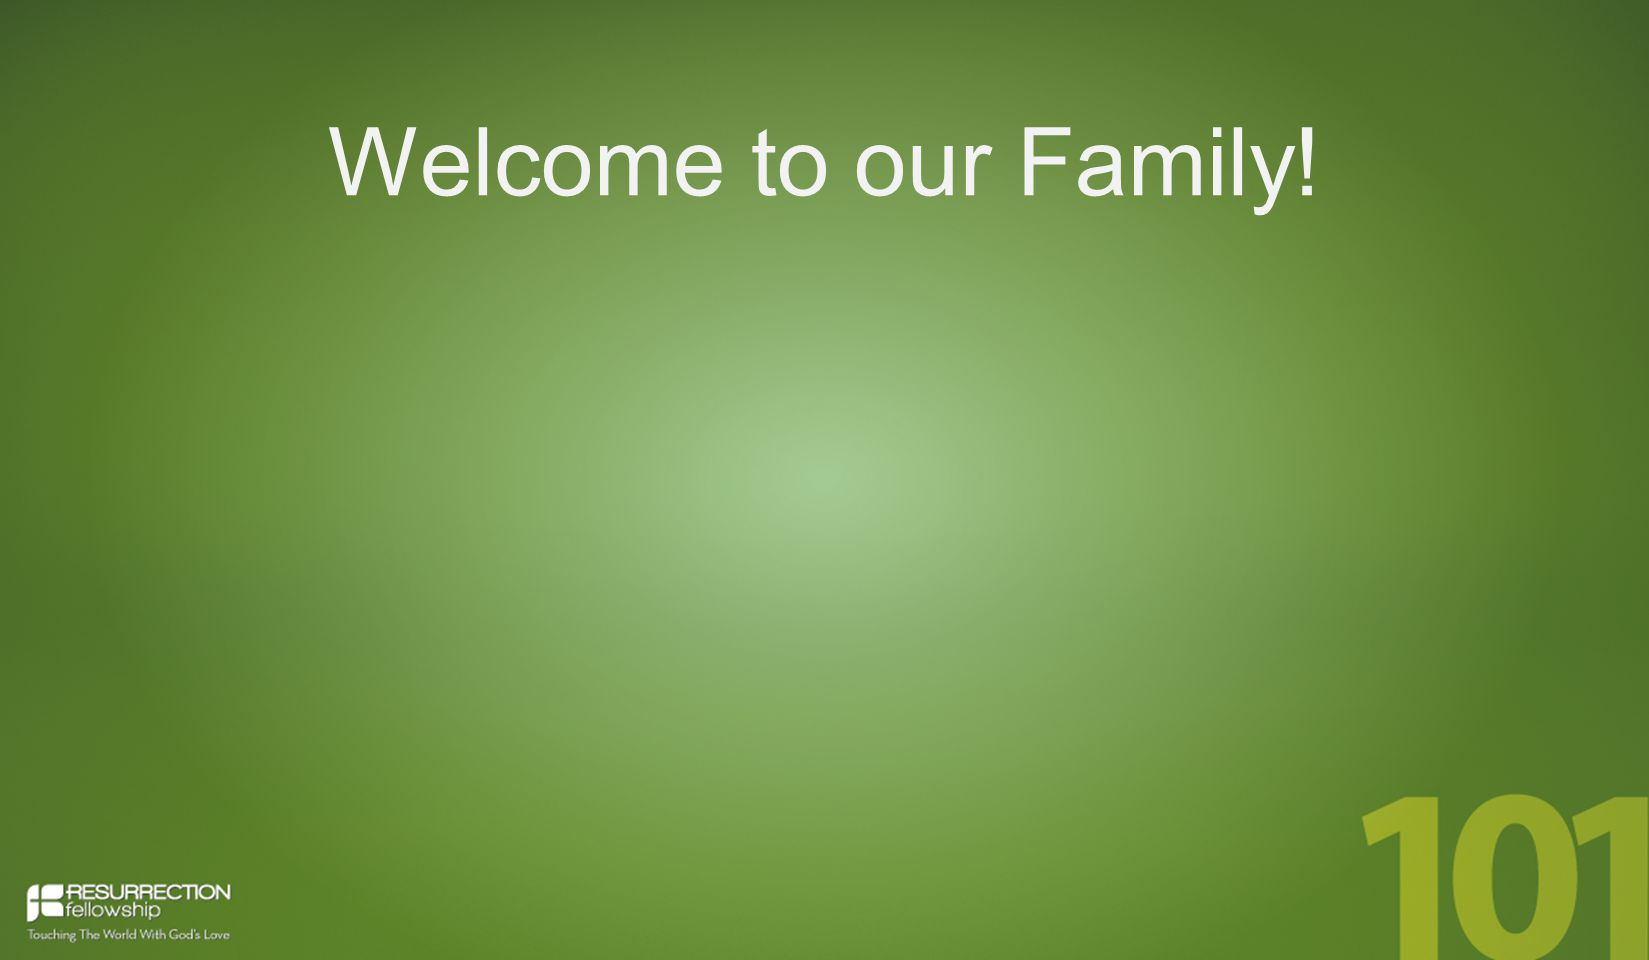 Welcome to our Family!